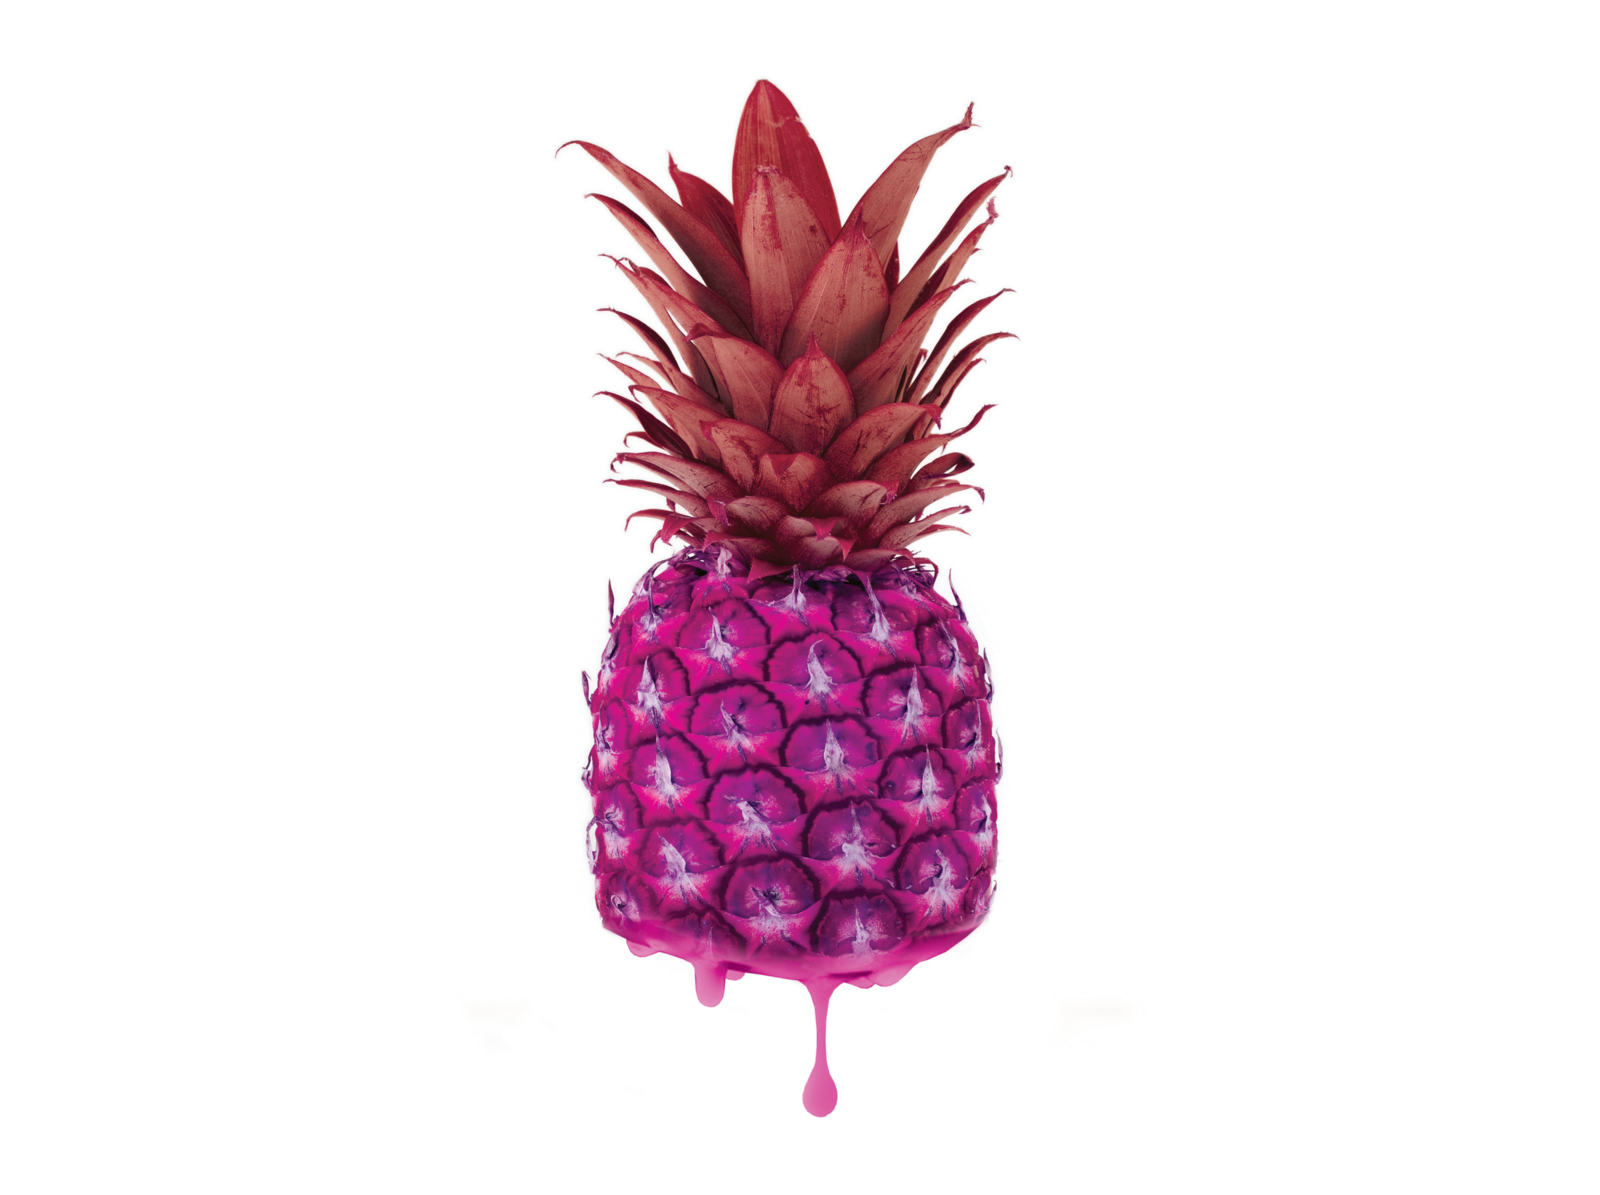 At the tail end of last year we were introduced to the pink pineapple, a beautiful yet totally odd creation. While they've been in development for over 12 years, only now are companies like Del.